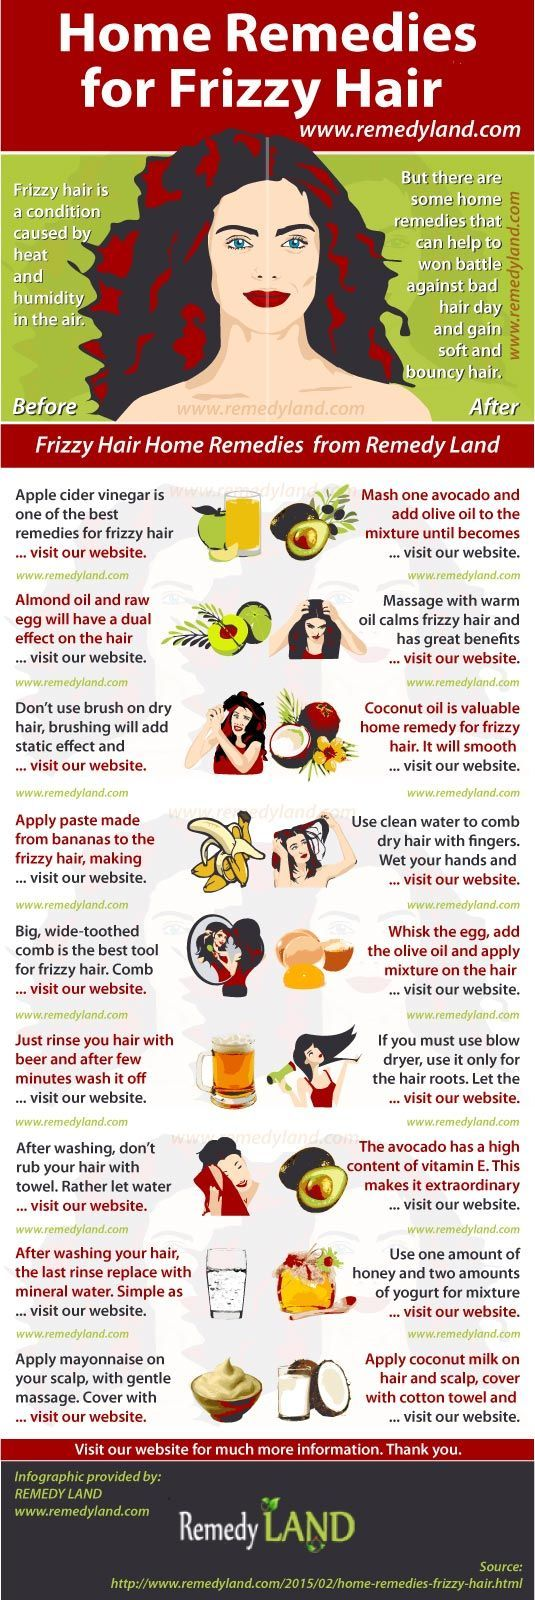 Frizzy Hair Home Remedies #hair #remedies